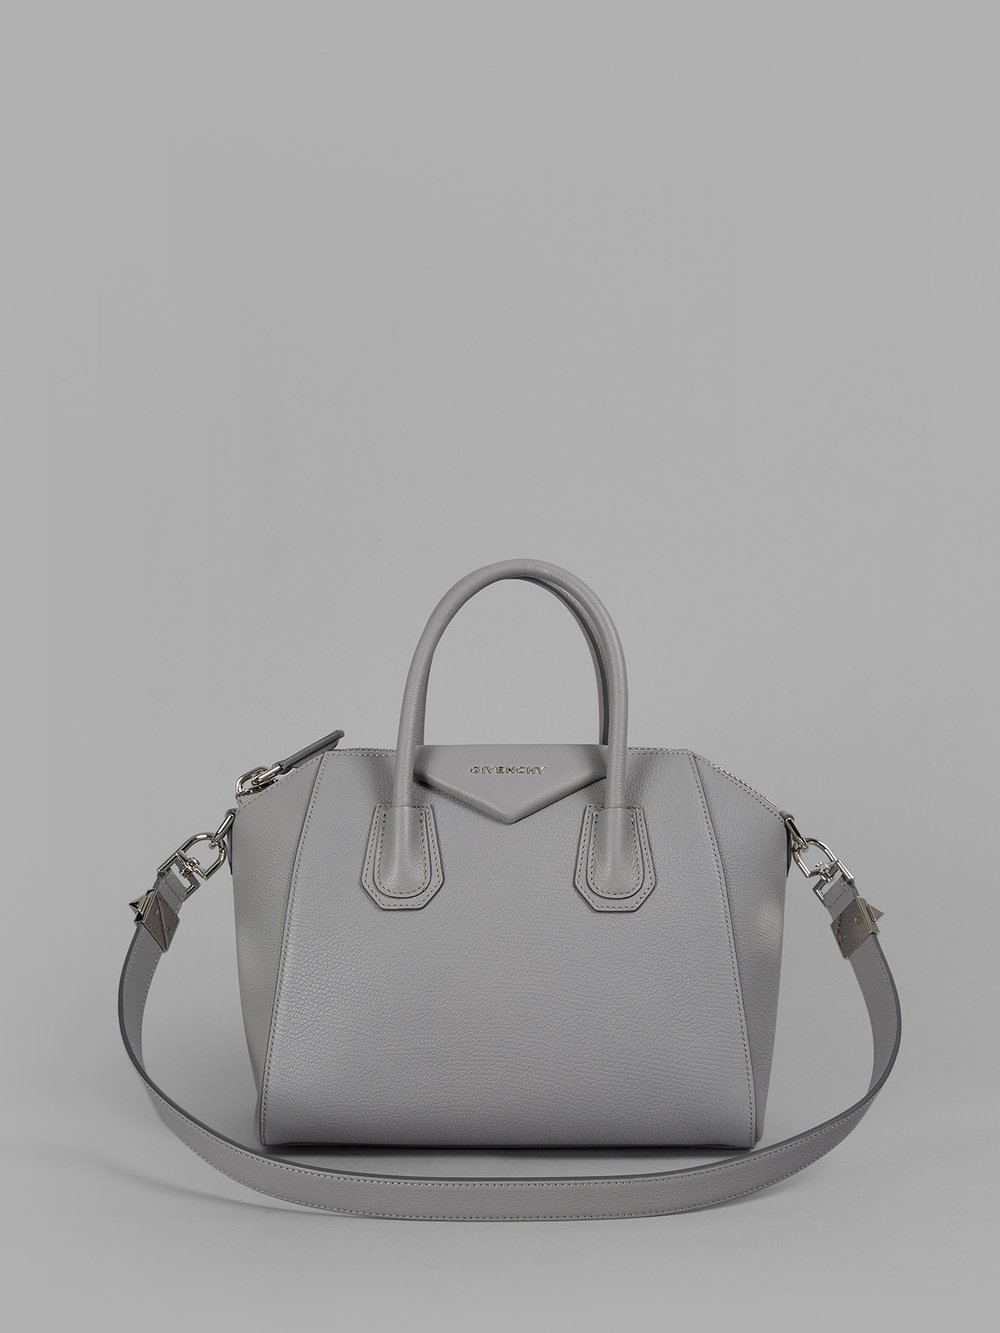 fb30c202a1 Givenchy - Shoulder Bags - Antonioli.eu